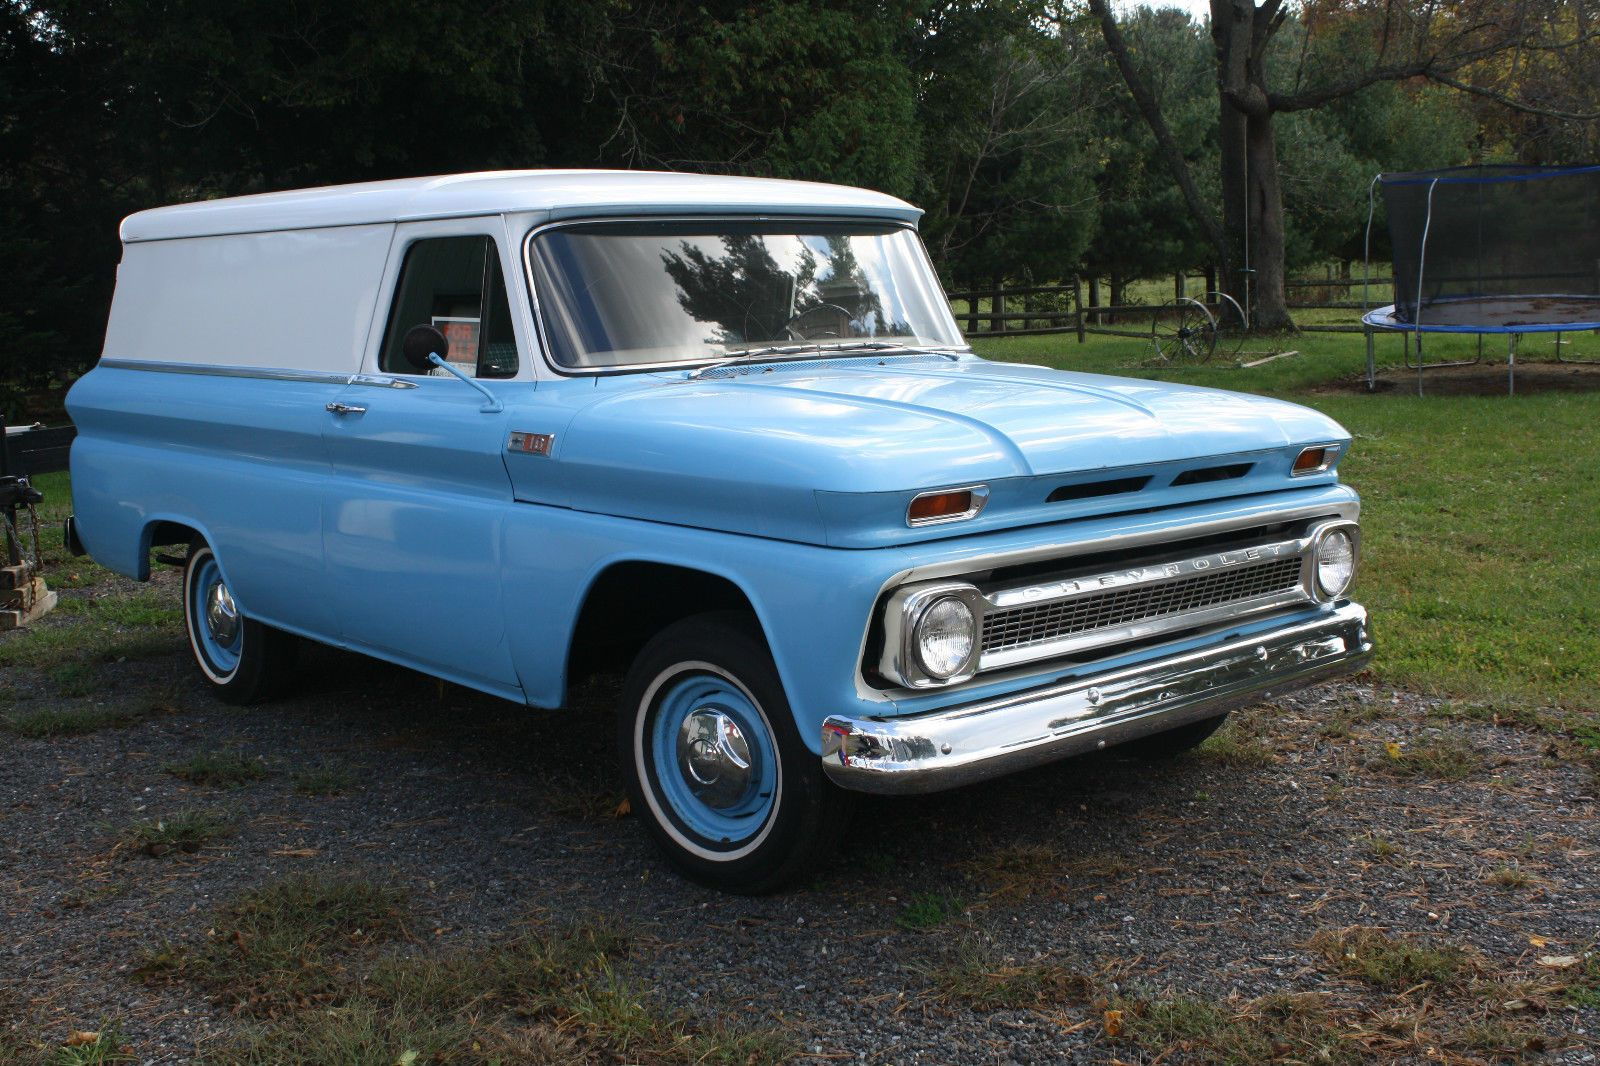 1966 Chevy Panel Delivery Classic Cars Trucks Chevrolet Trucks Panel Truck